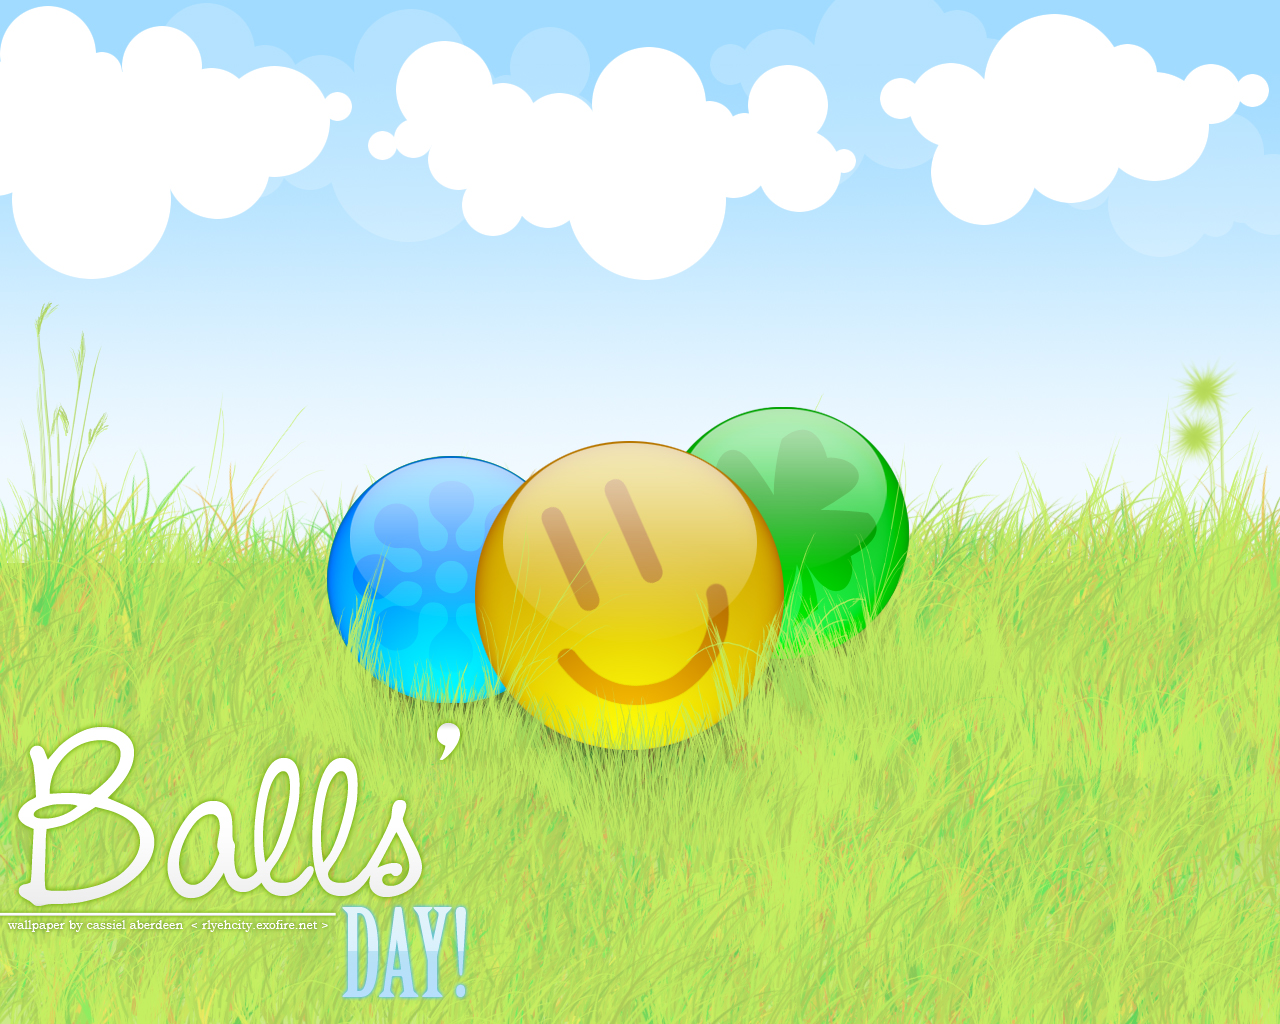 Ball's Day